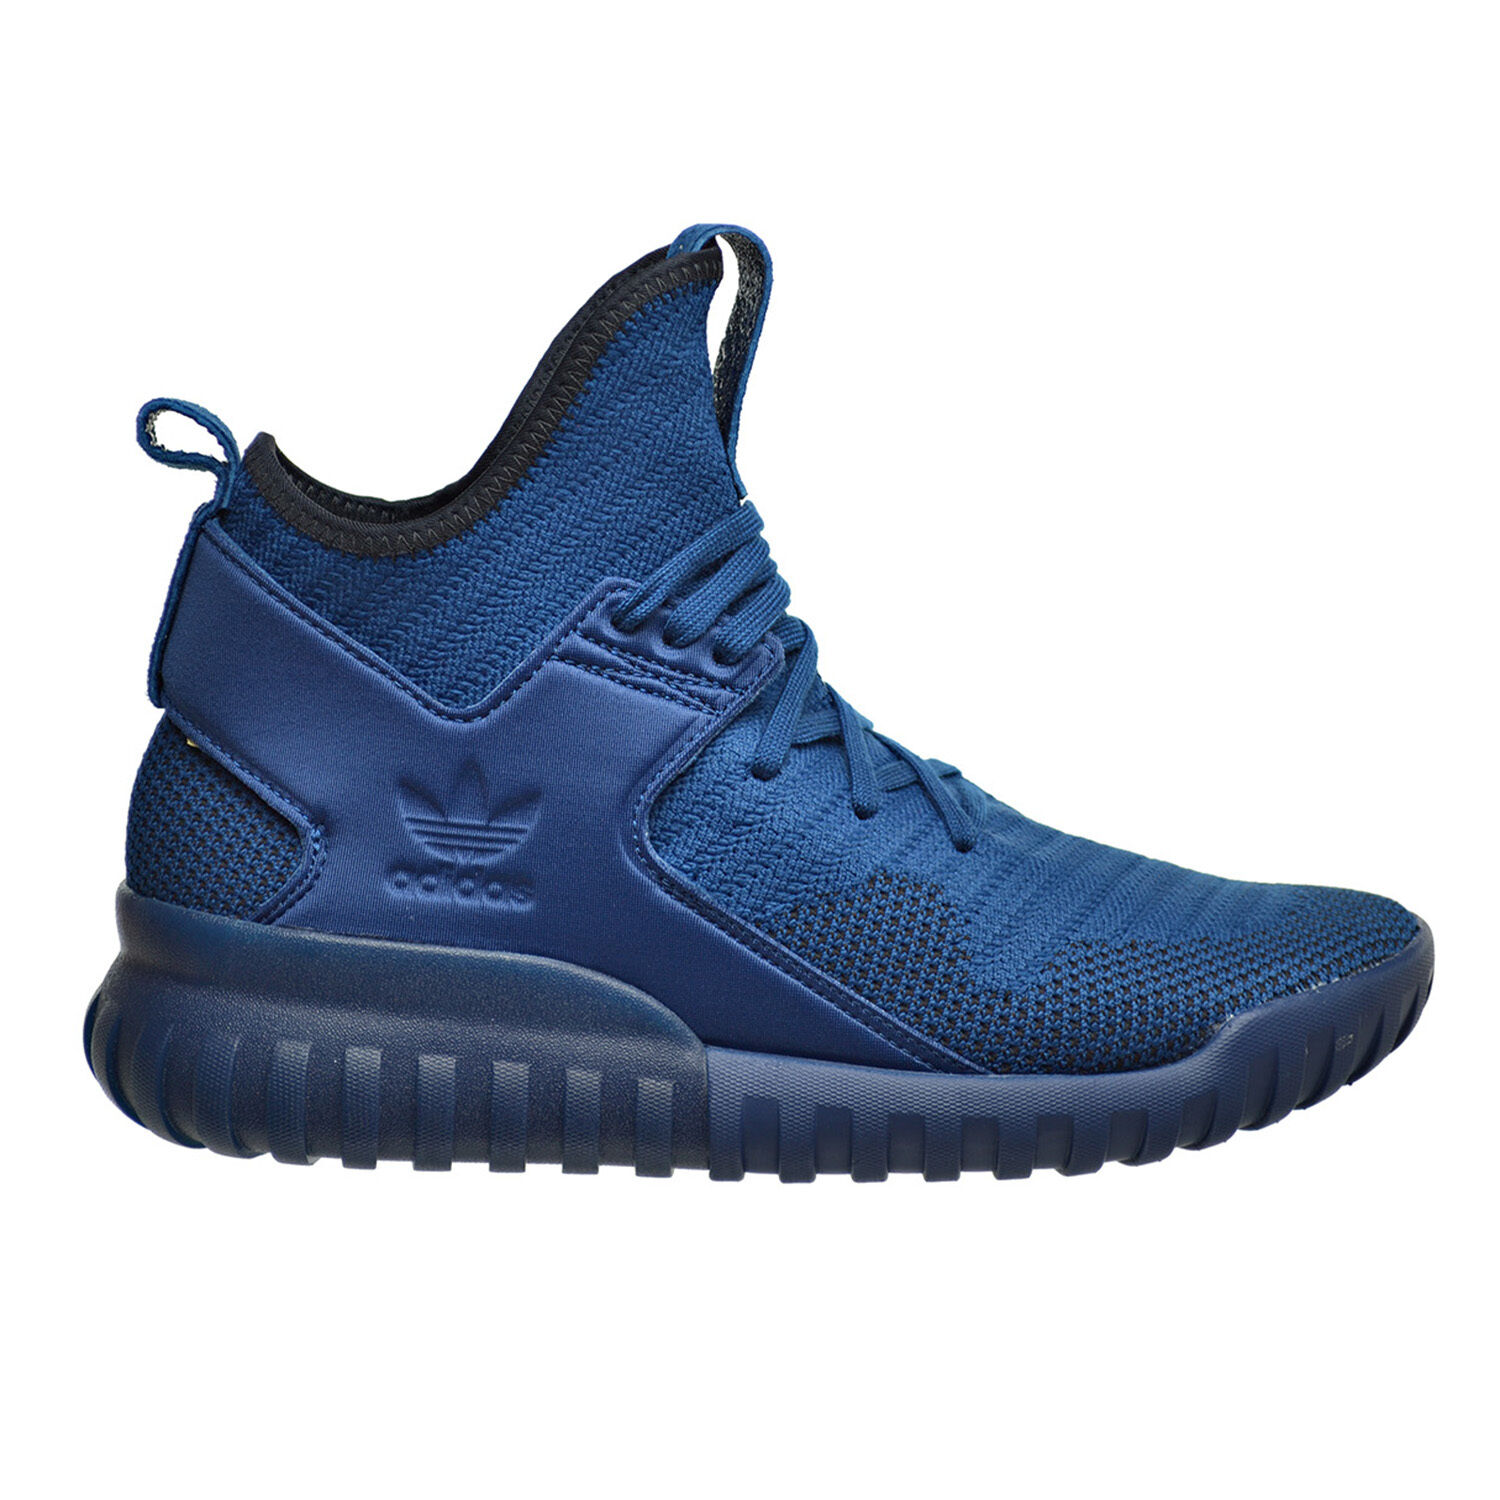 new product a775b 337d0 Adidas Tubular X Prime Knit Mens Shoes Navy Tech Steel/Tech Steel/Black  s80131